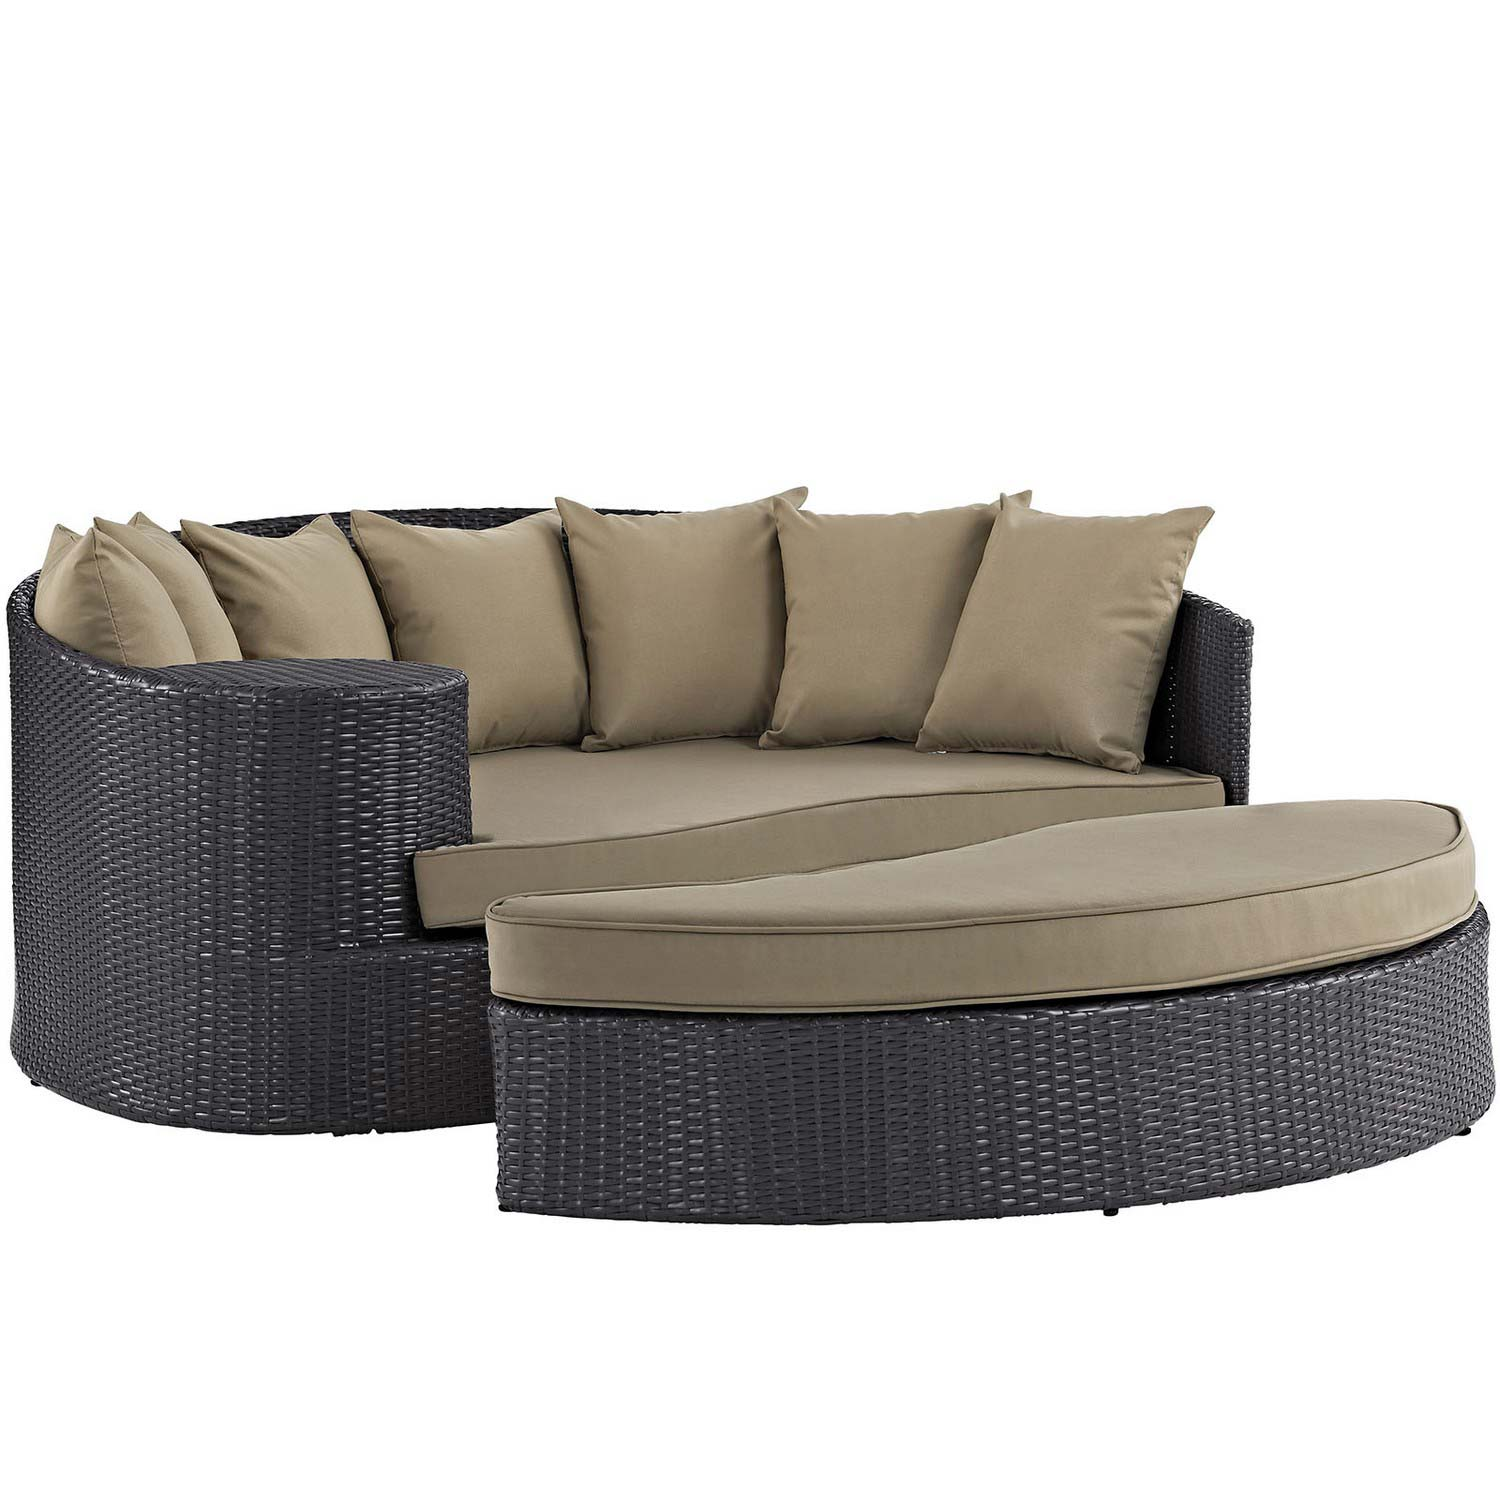 Modway Taiji Outdoor Patio Daybed - Espresso/Mocha